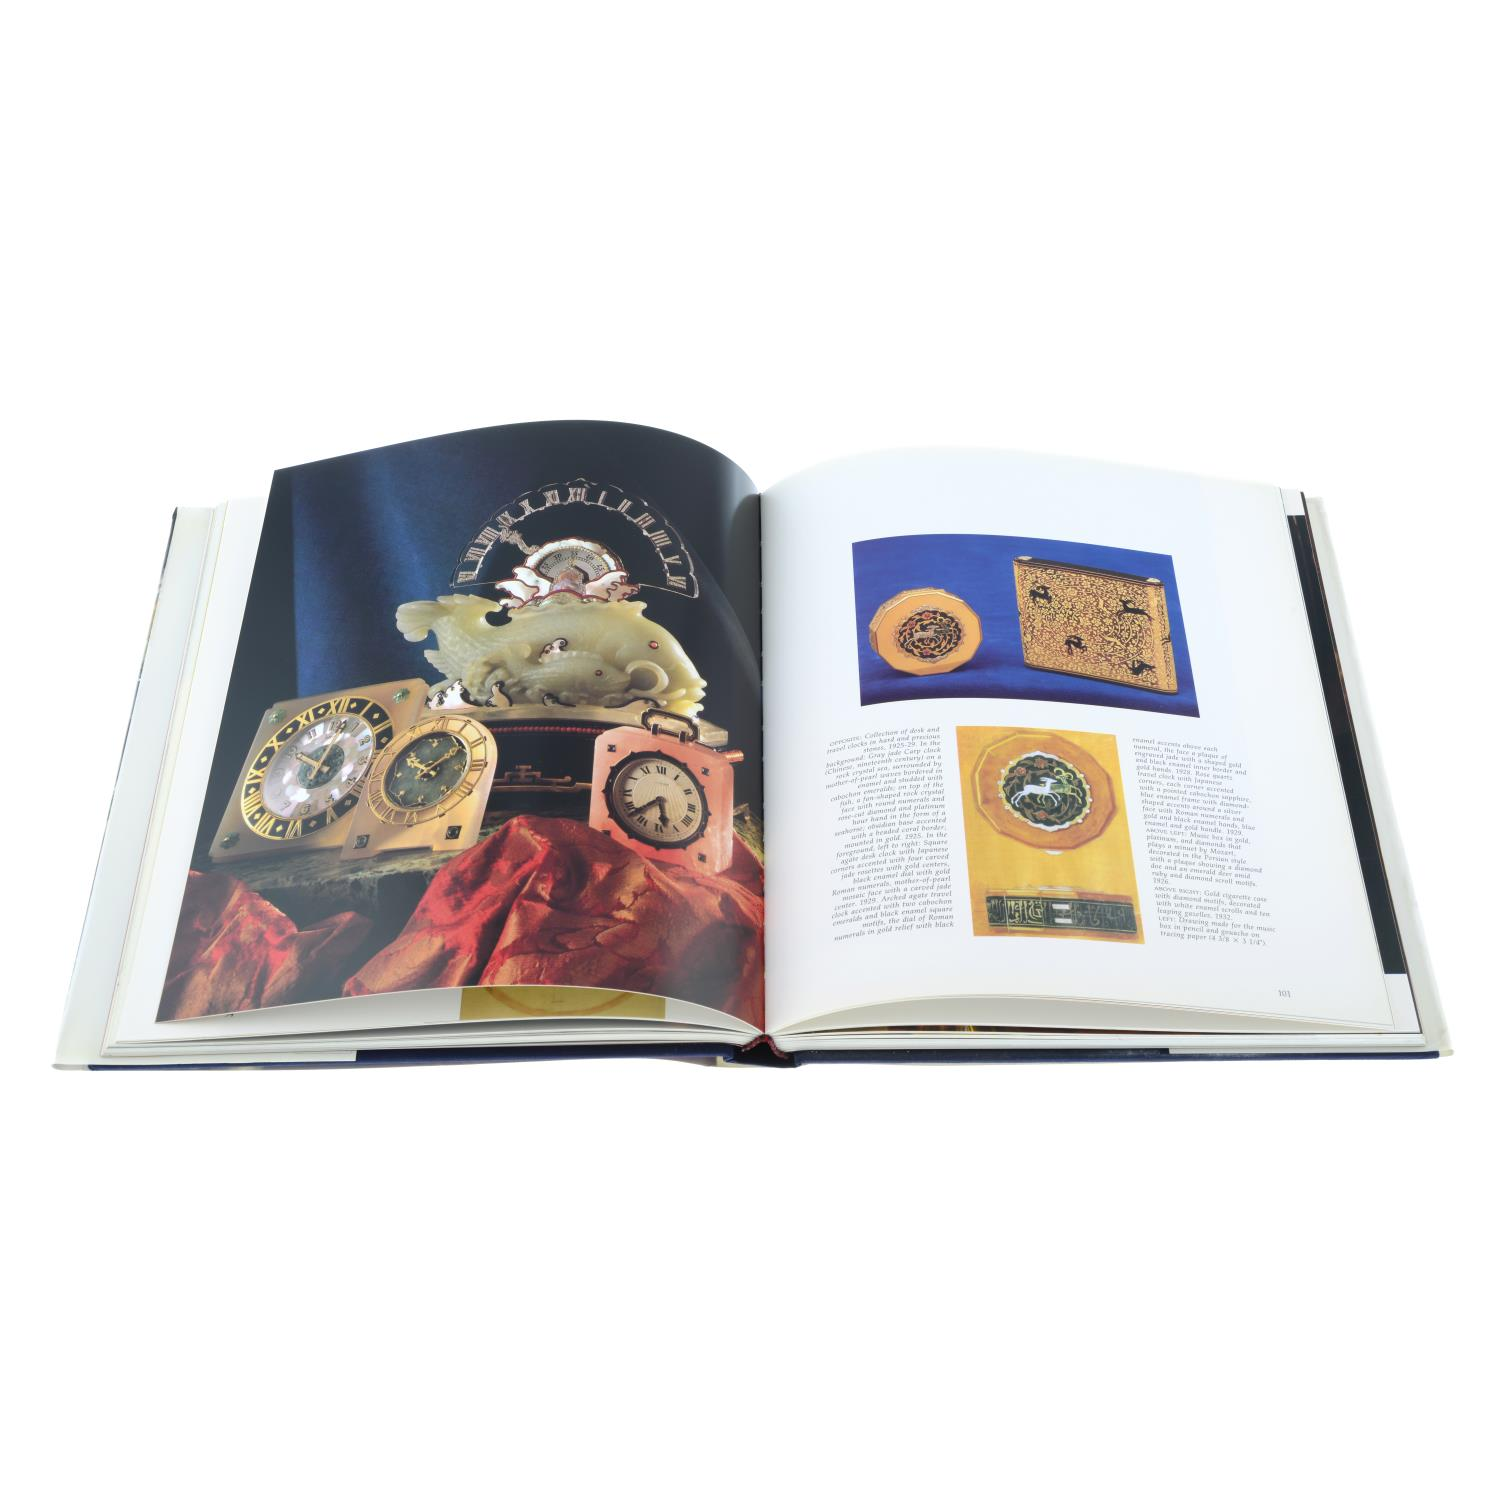 Book: 'Made by Cartier' by Cologni Mocchetti. - Image 2 of 2